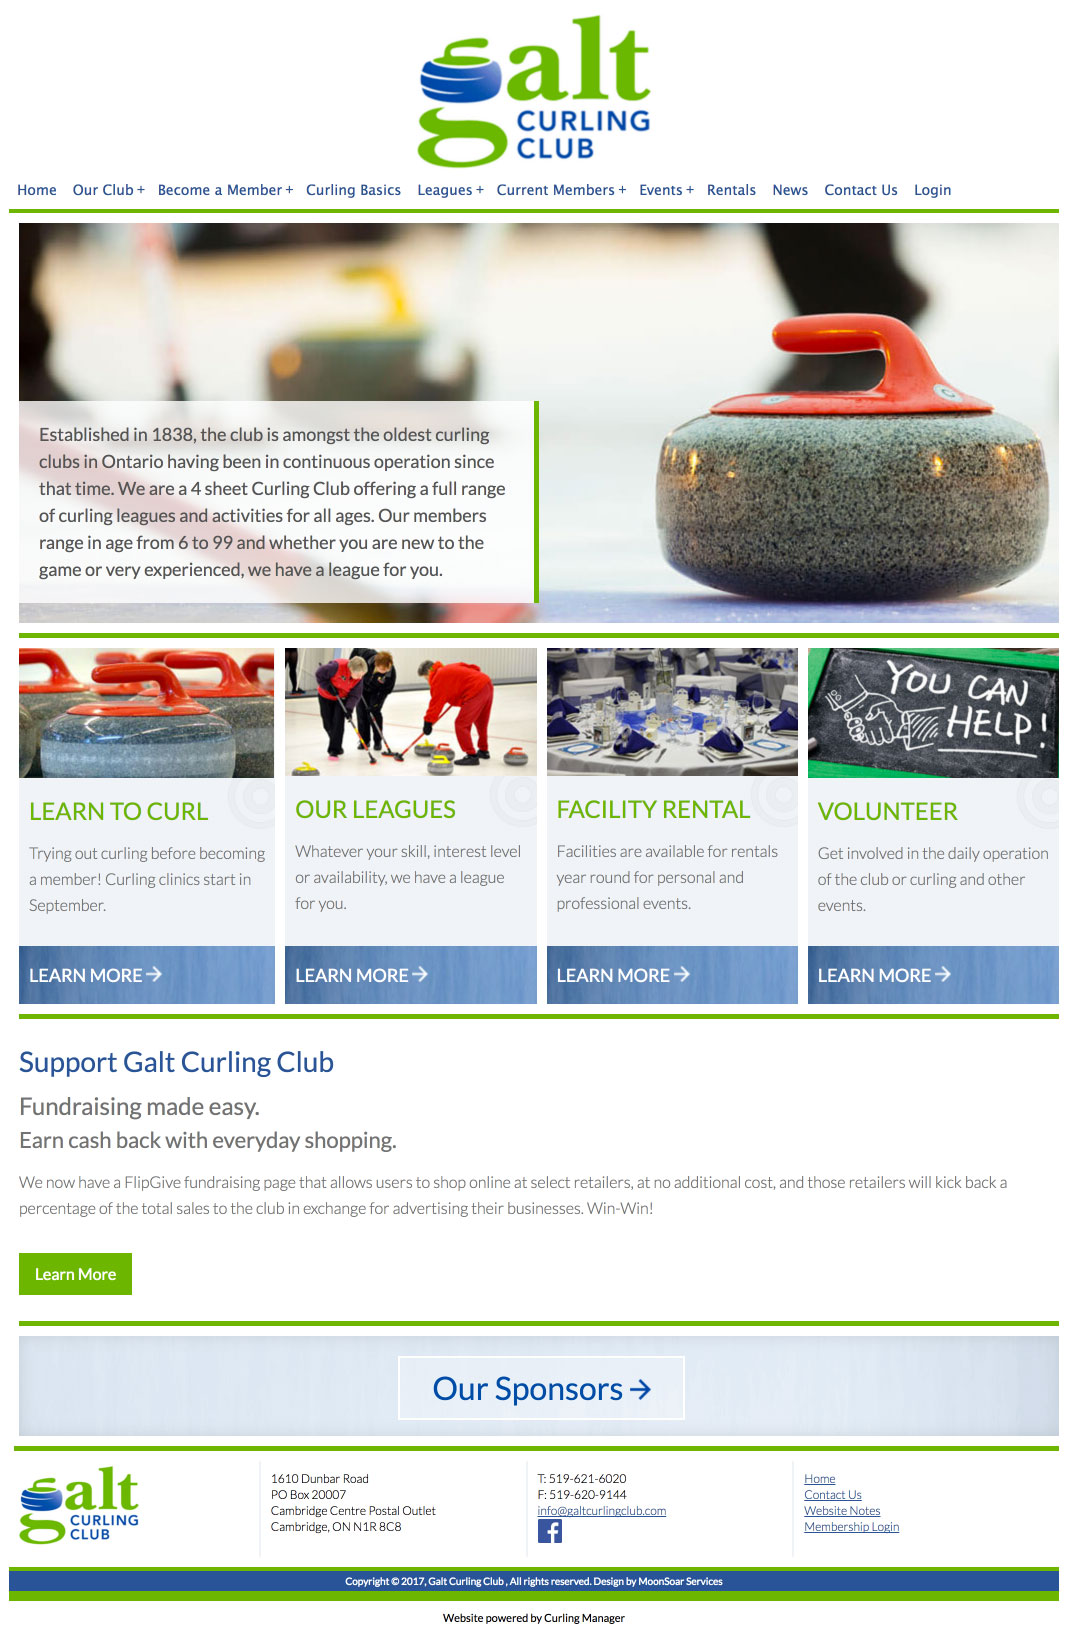 Screenshot of Galt Curling Club website